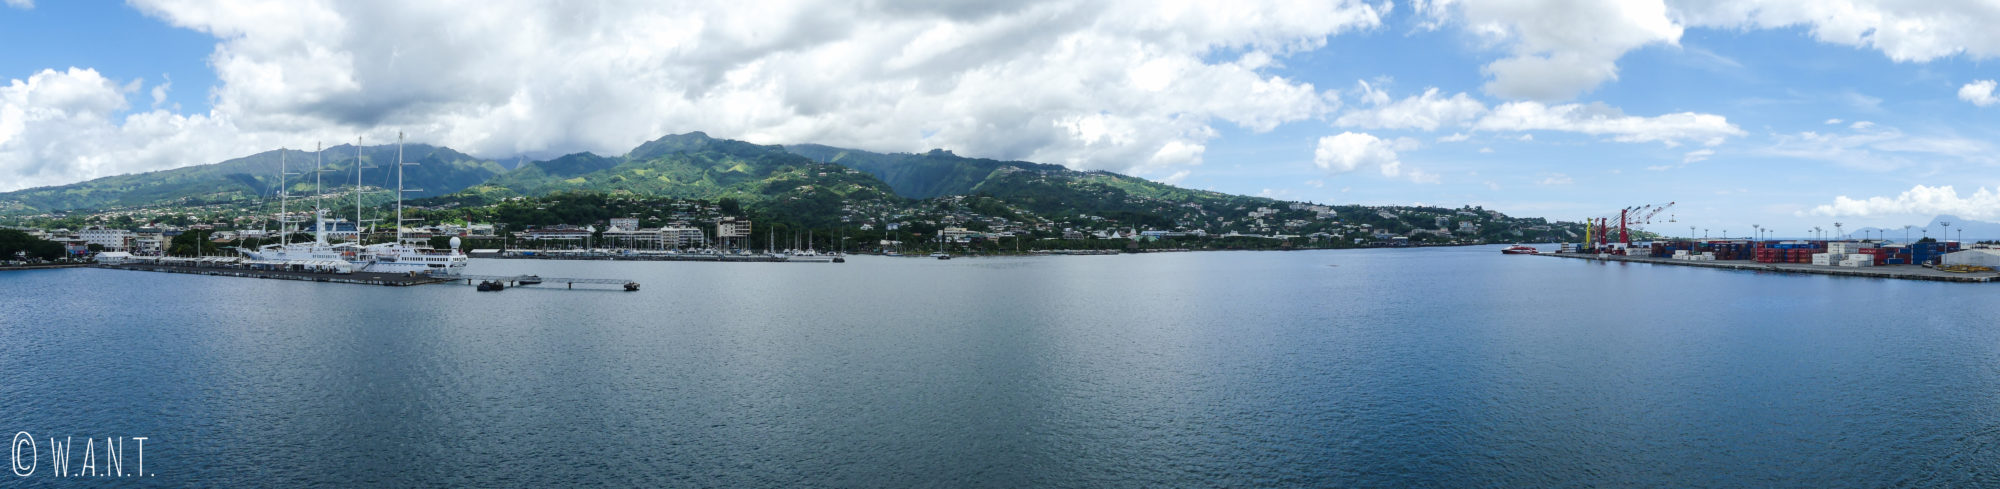 Panorama du port de Papeete